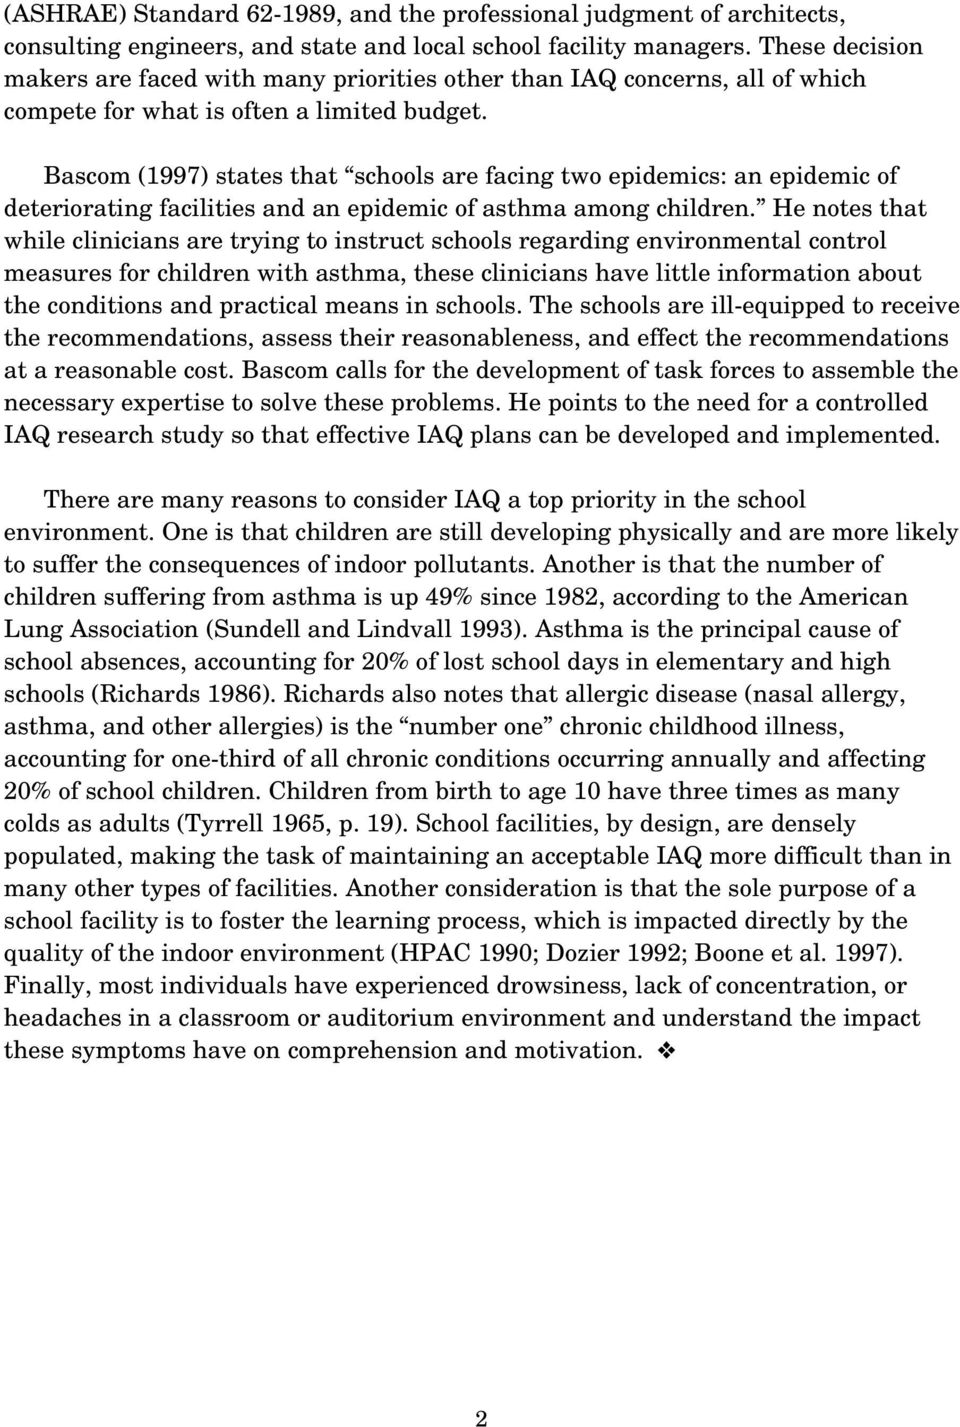 Bascom (1997) states that schools are facing two epidemics: an epidemic of deteriorating facilities and an epidemic of asthma among children.